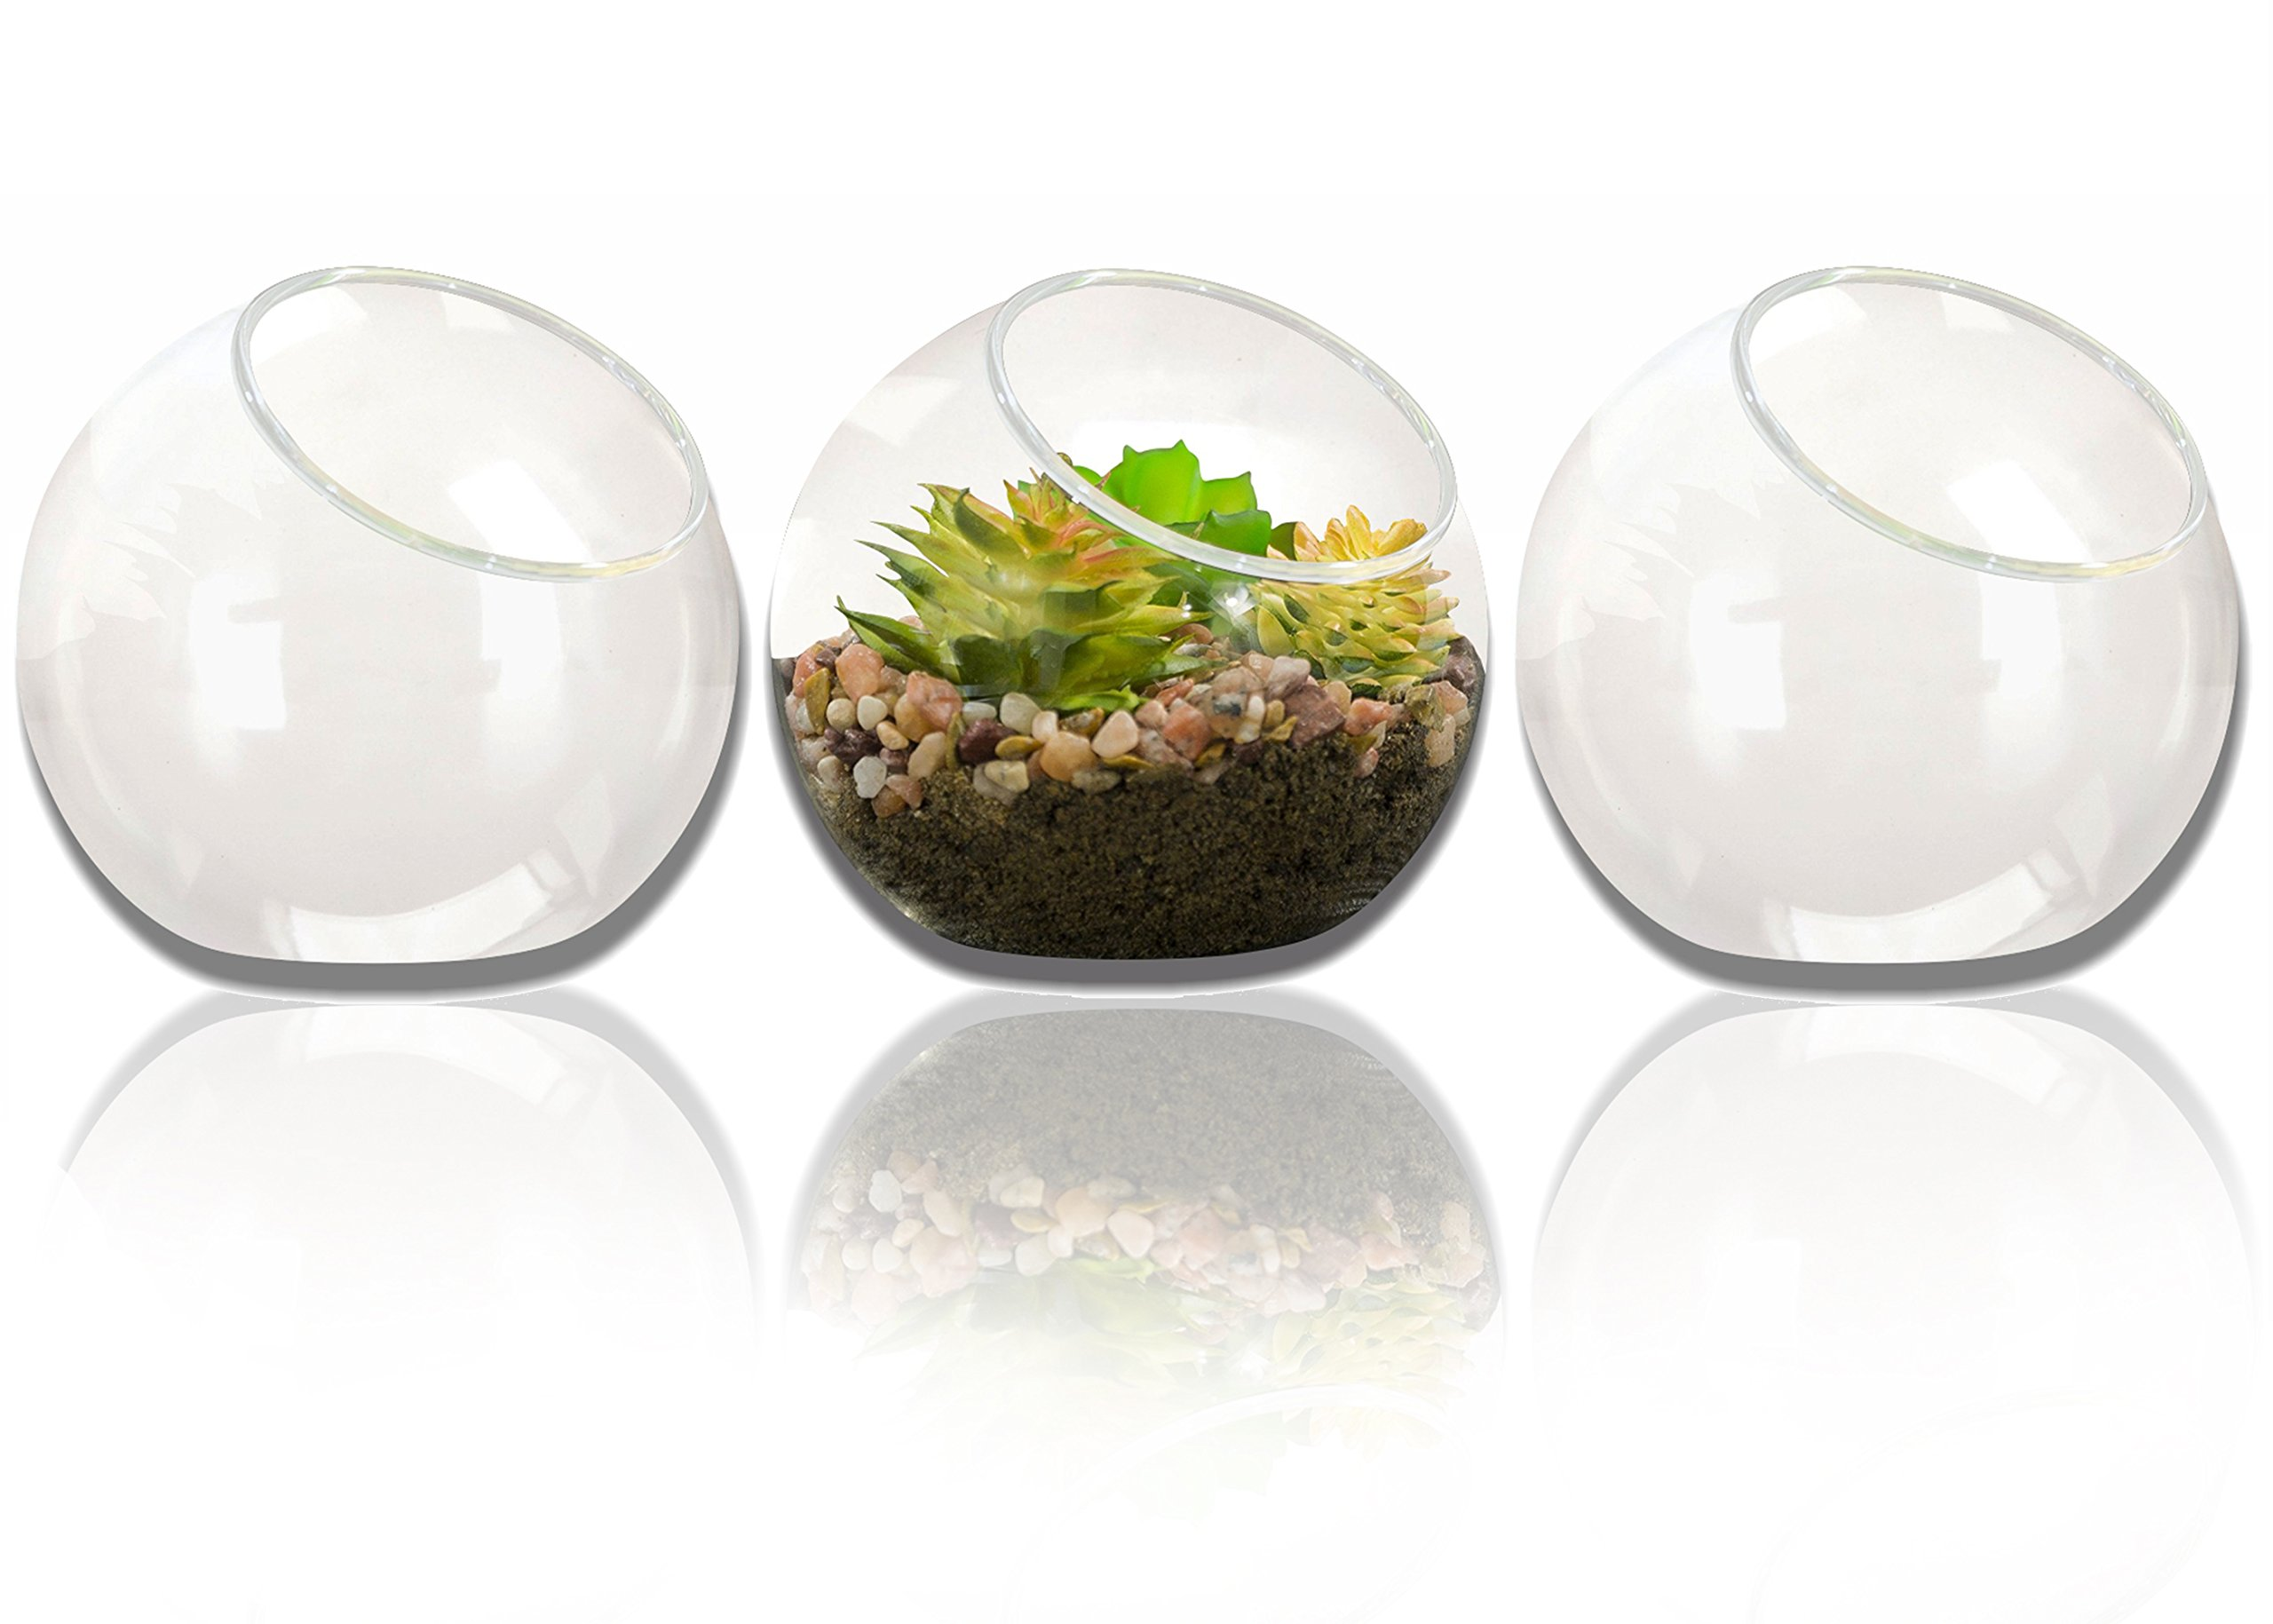 NeutralPure ECO Tabletop Glass Plant Terrarium (3 Pcs) by NeutralPure ECO